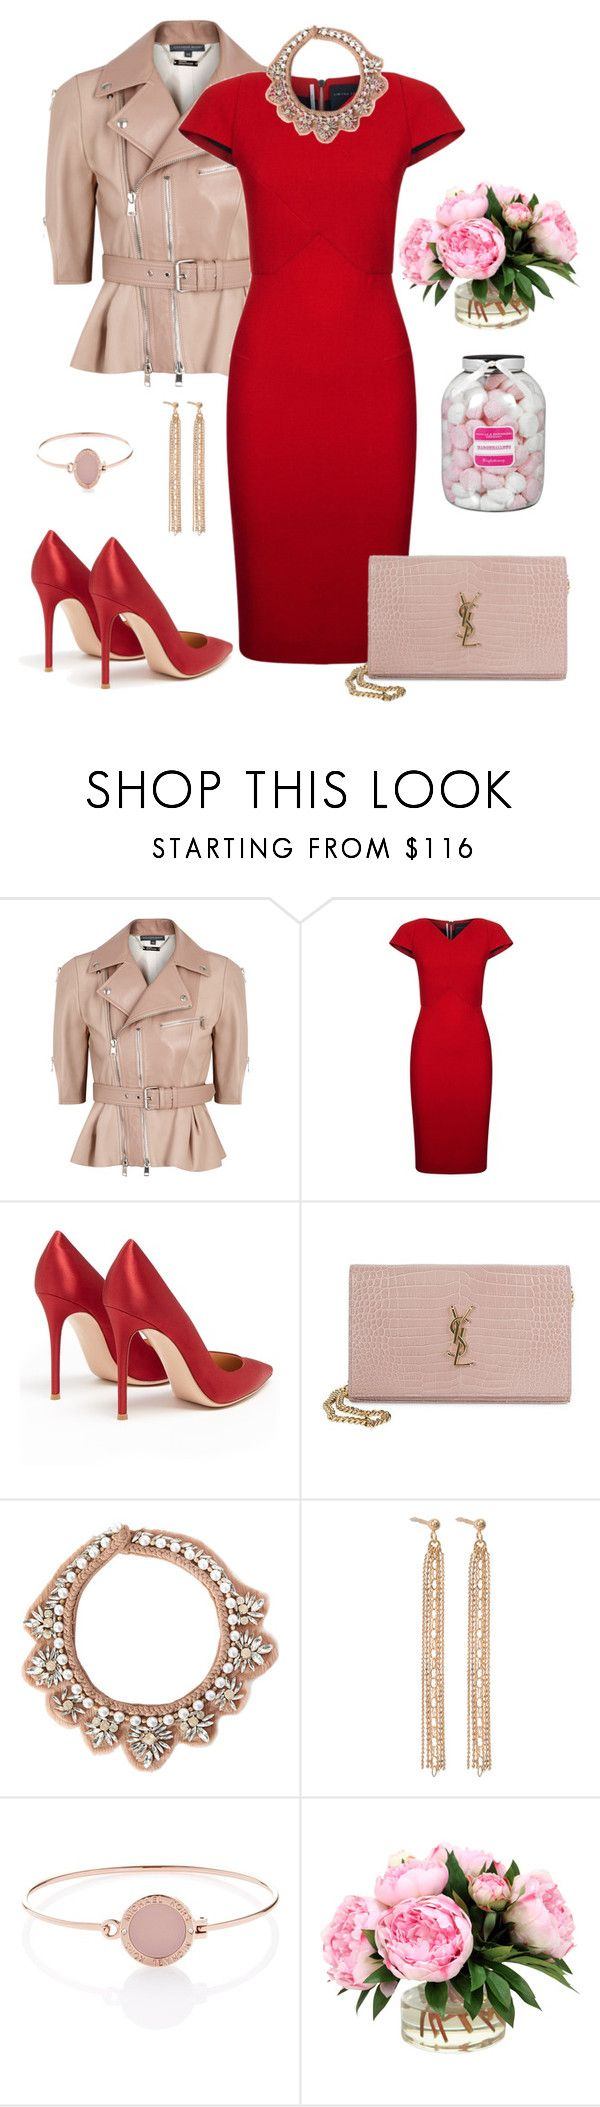 """""""Untitled #456"""" by elenarudometov ❤ liked on Polyvore featuring Alexander McQueen, Roland Mouret, Gianvito Rossi, Yves Saint Laurent, Mignonne Gavigan, Ginette NY, Michael Kors and Farhi by Nicole Farhi"""